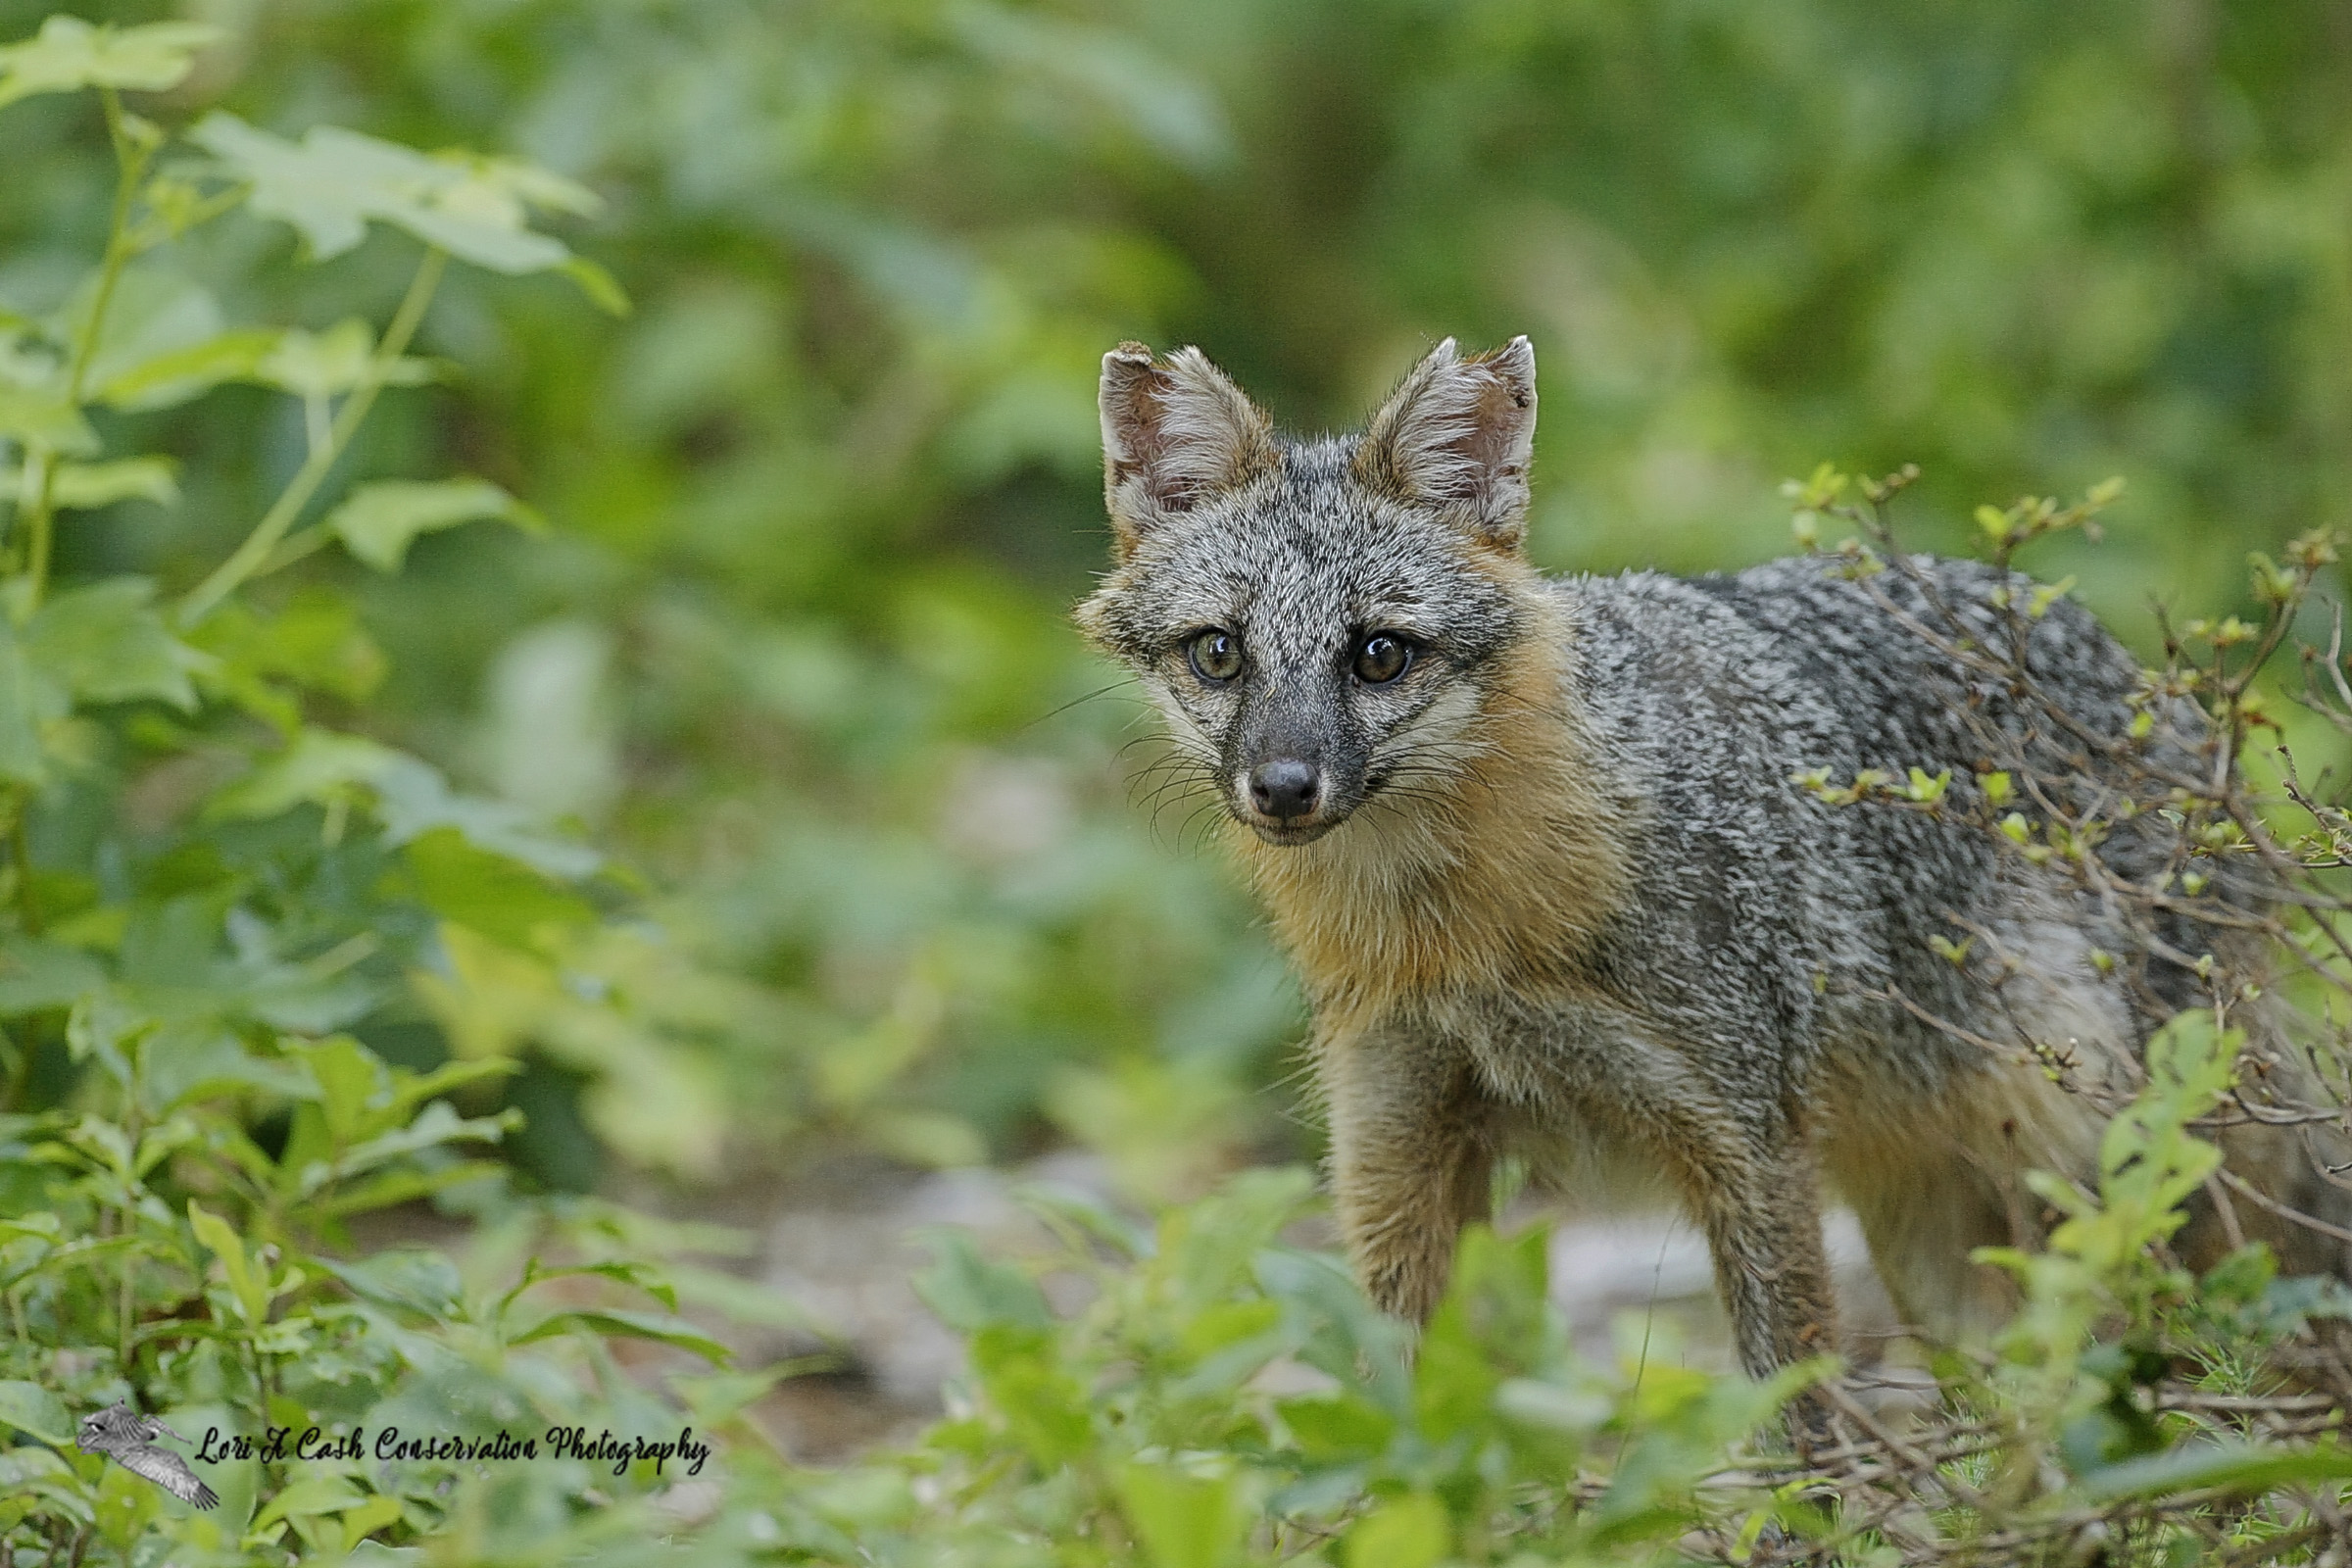 Gray fox (Urocyon cinereoargenteus) standing at the edge of the woods at Point Harbor in Currituck County, North Carolina.